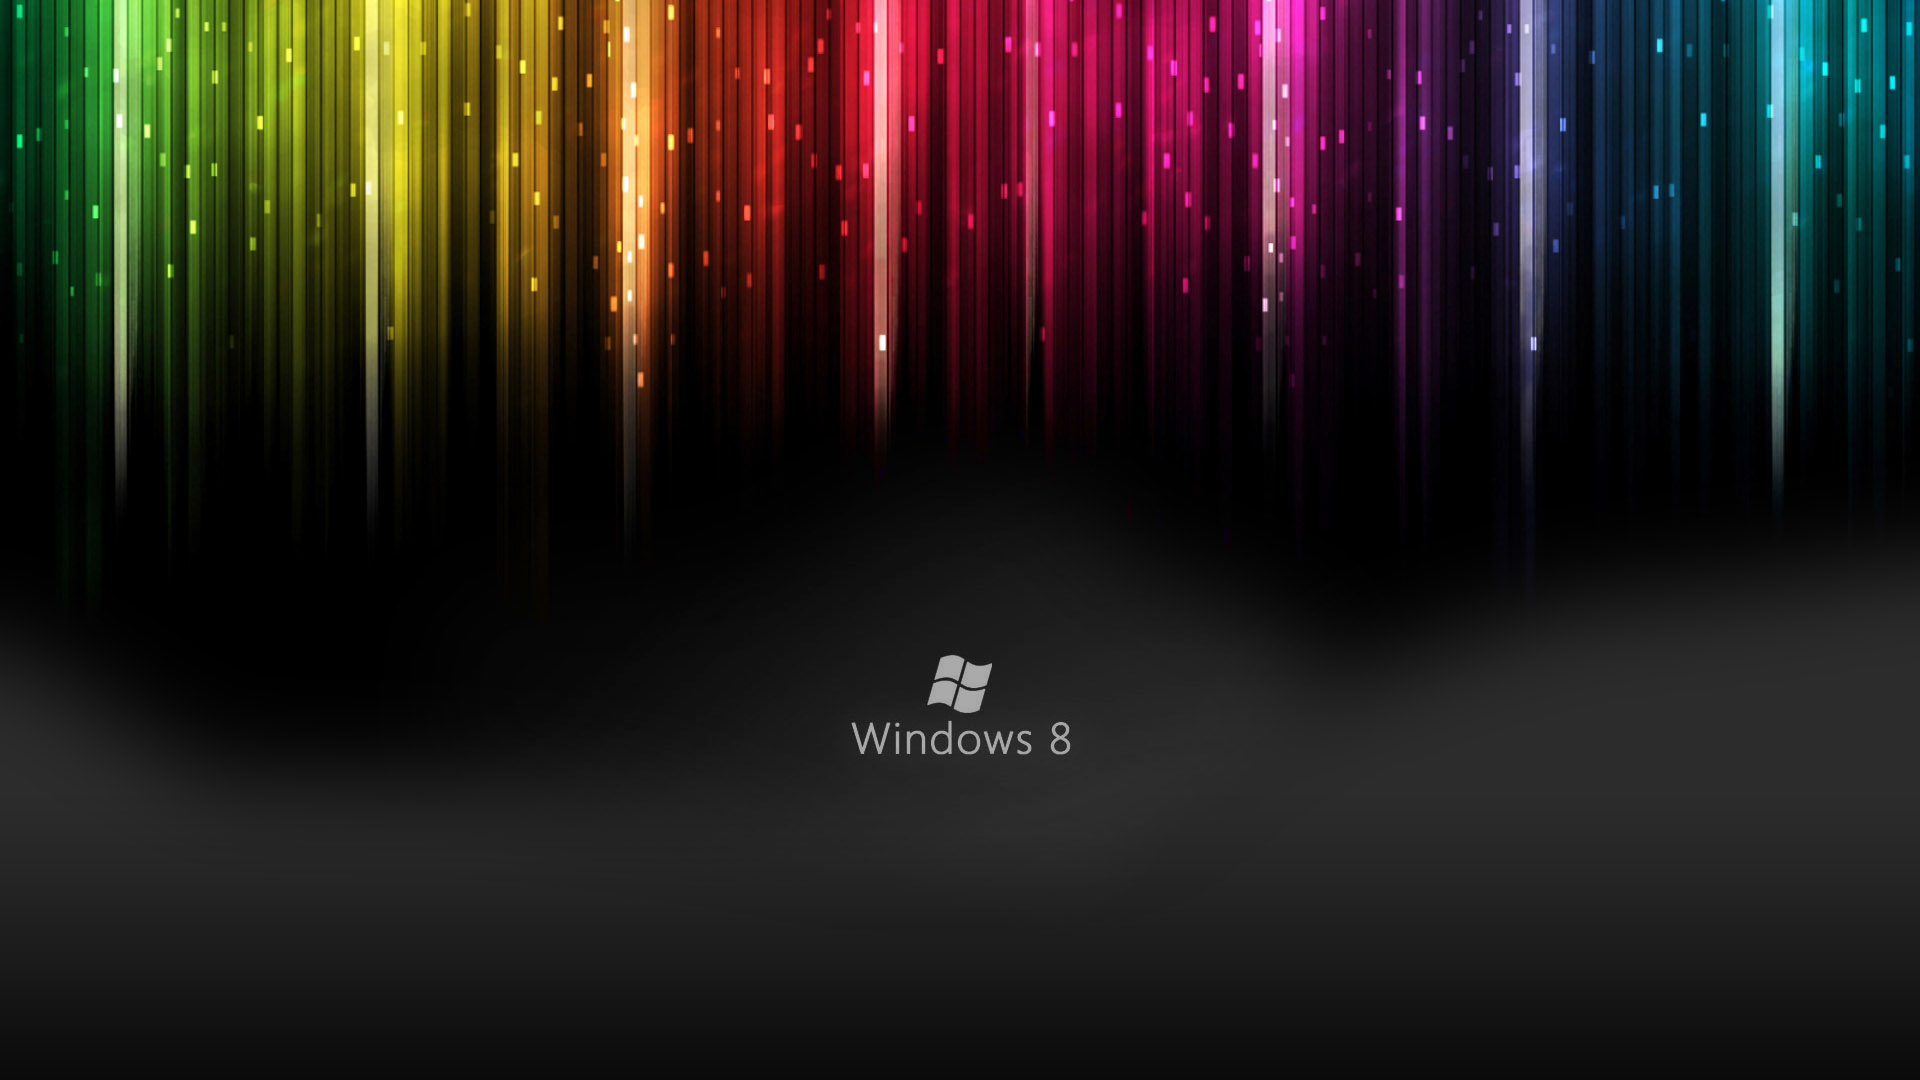 HD Wallpapers Live For Pc